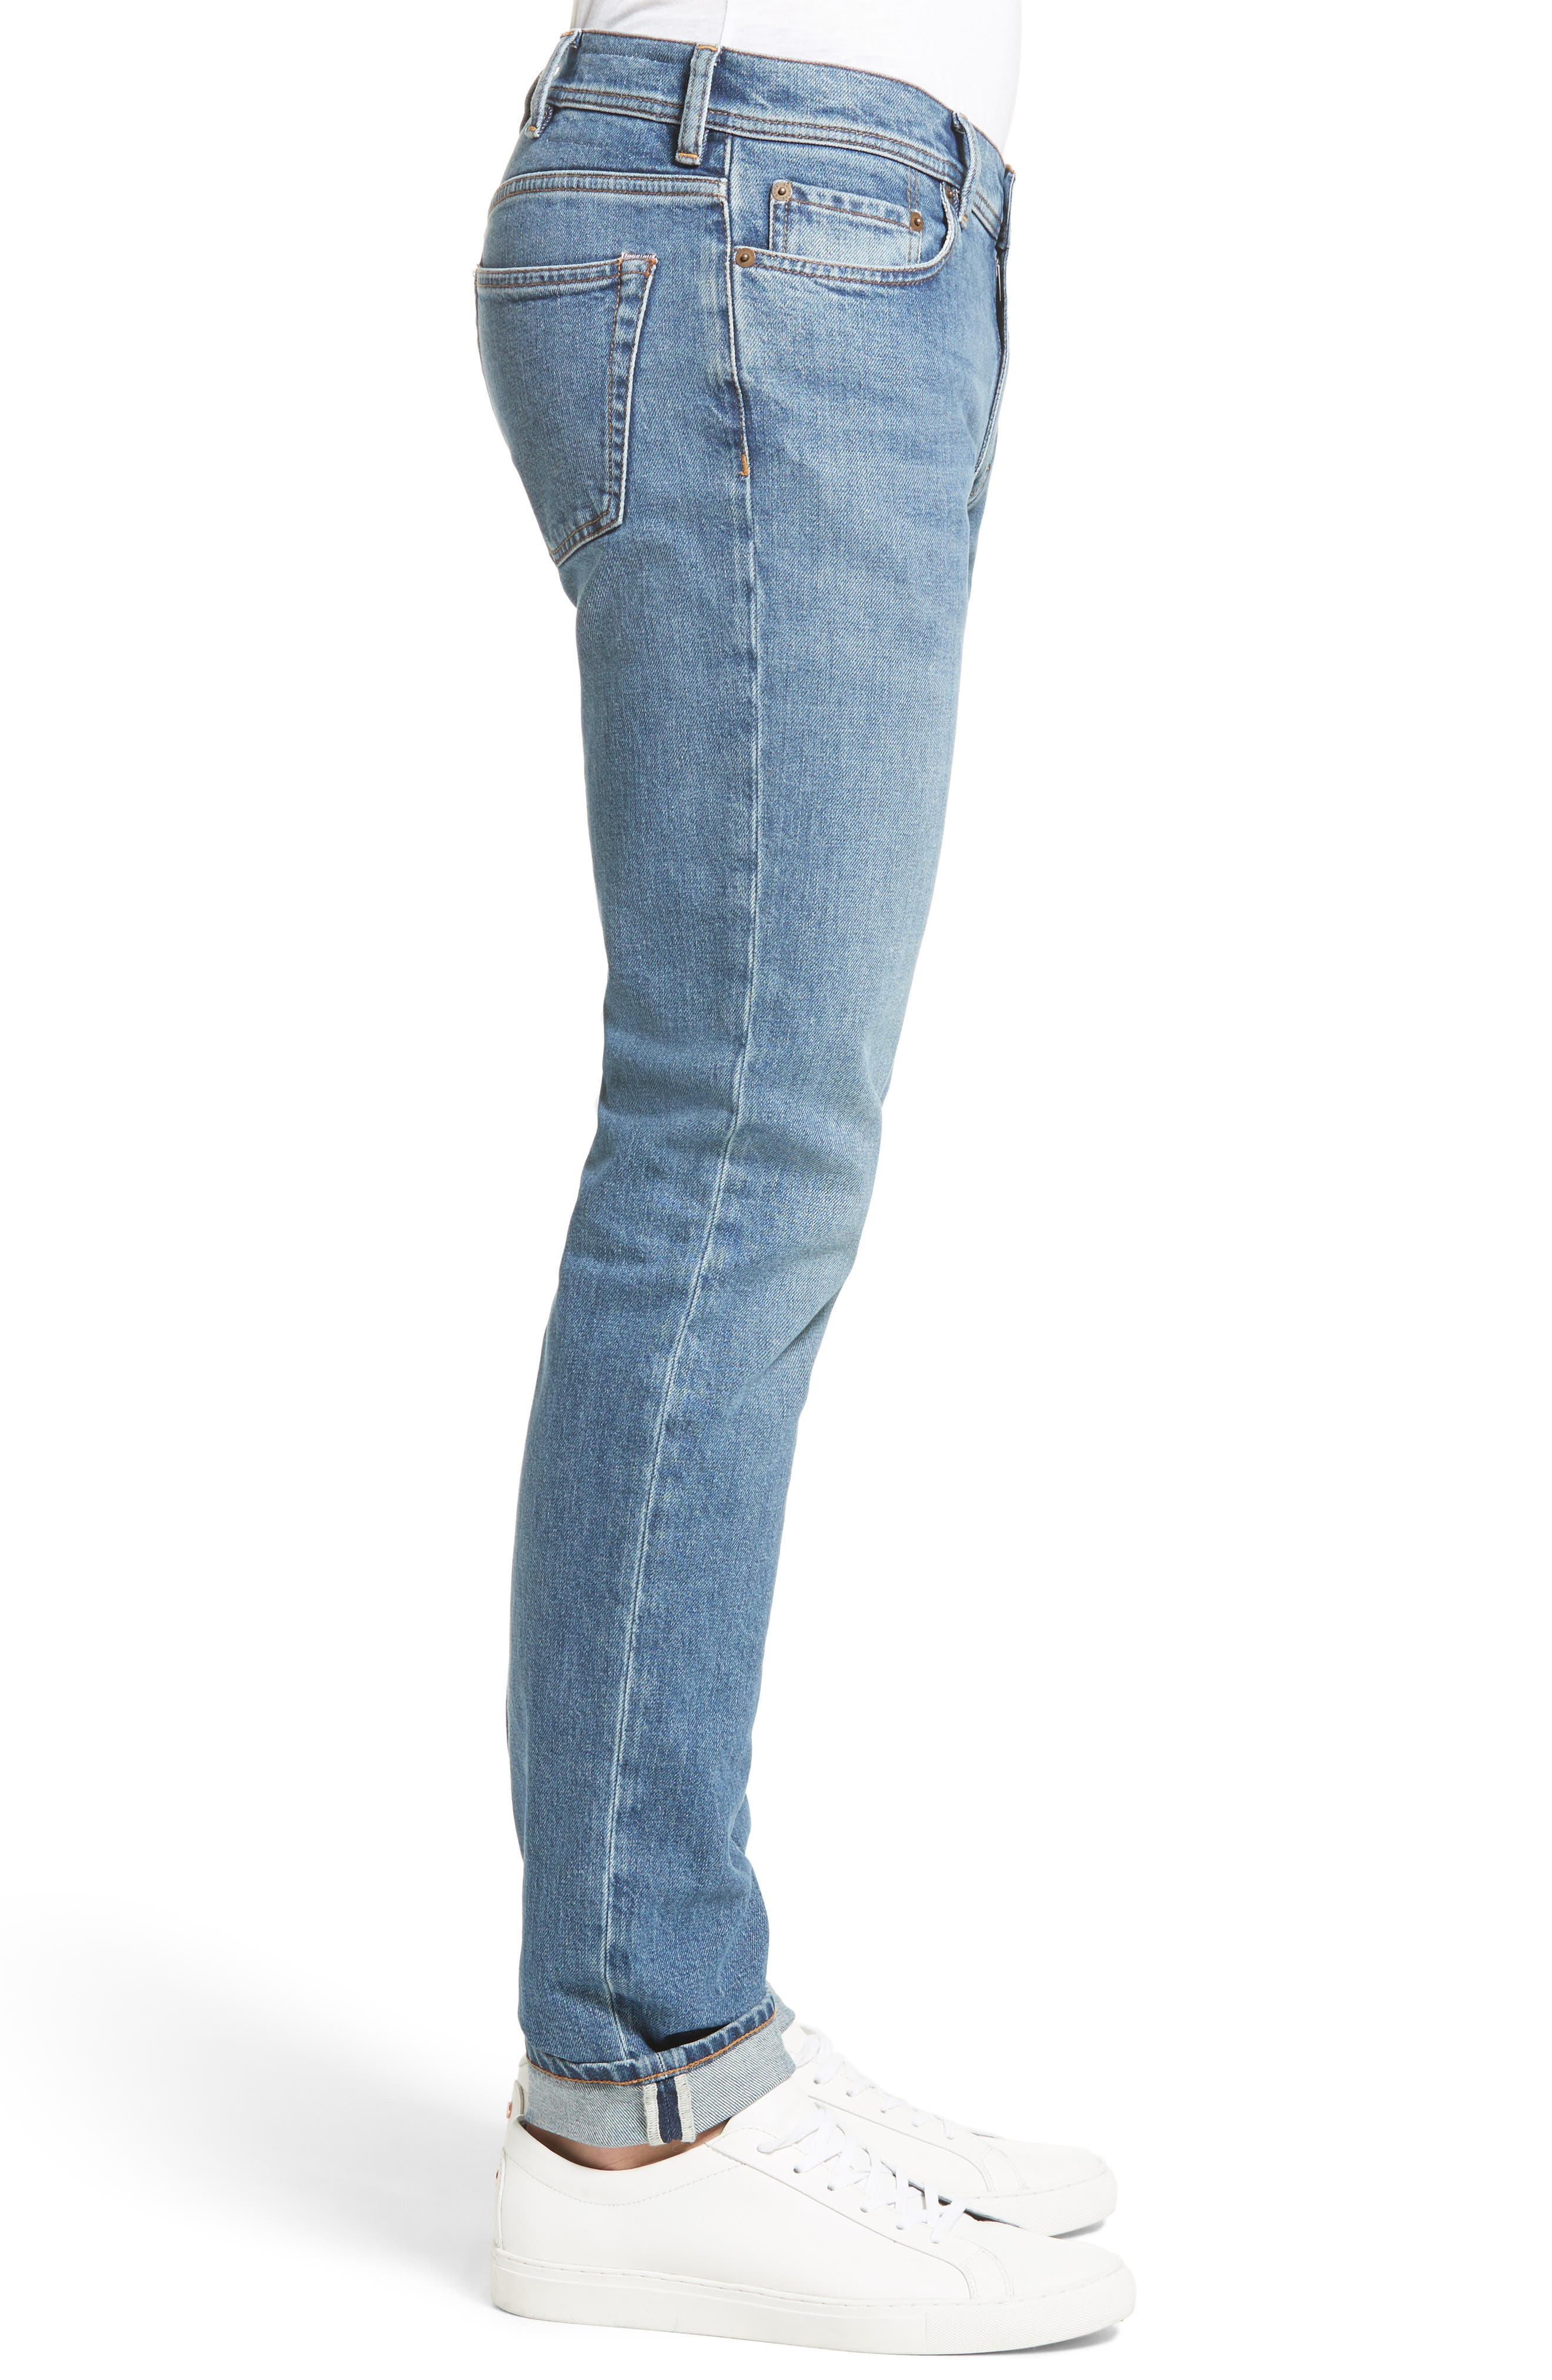 North Skinny Jeans,                             Alternate thumbnail 3, color,                             Mid Blue